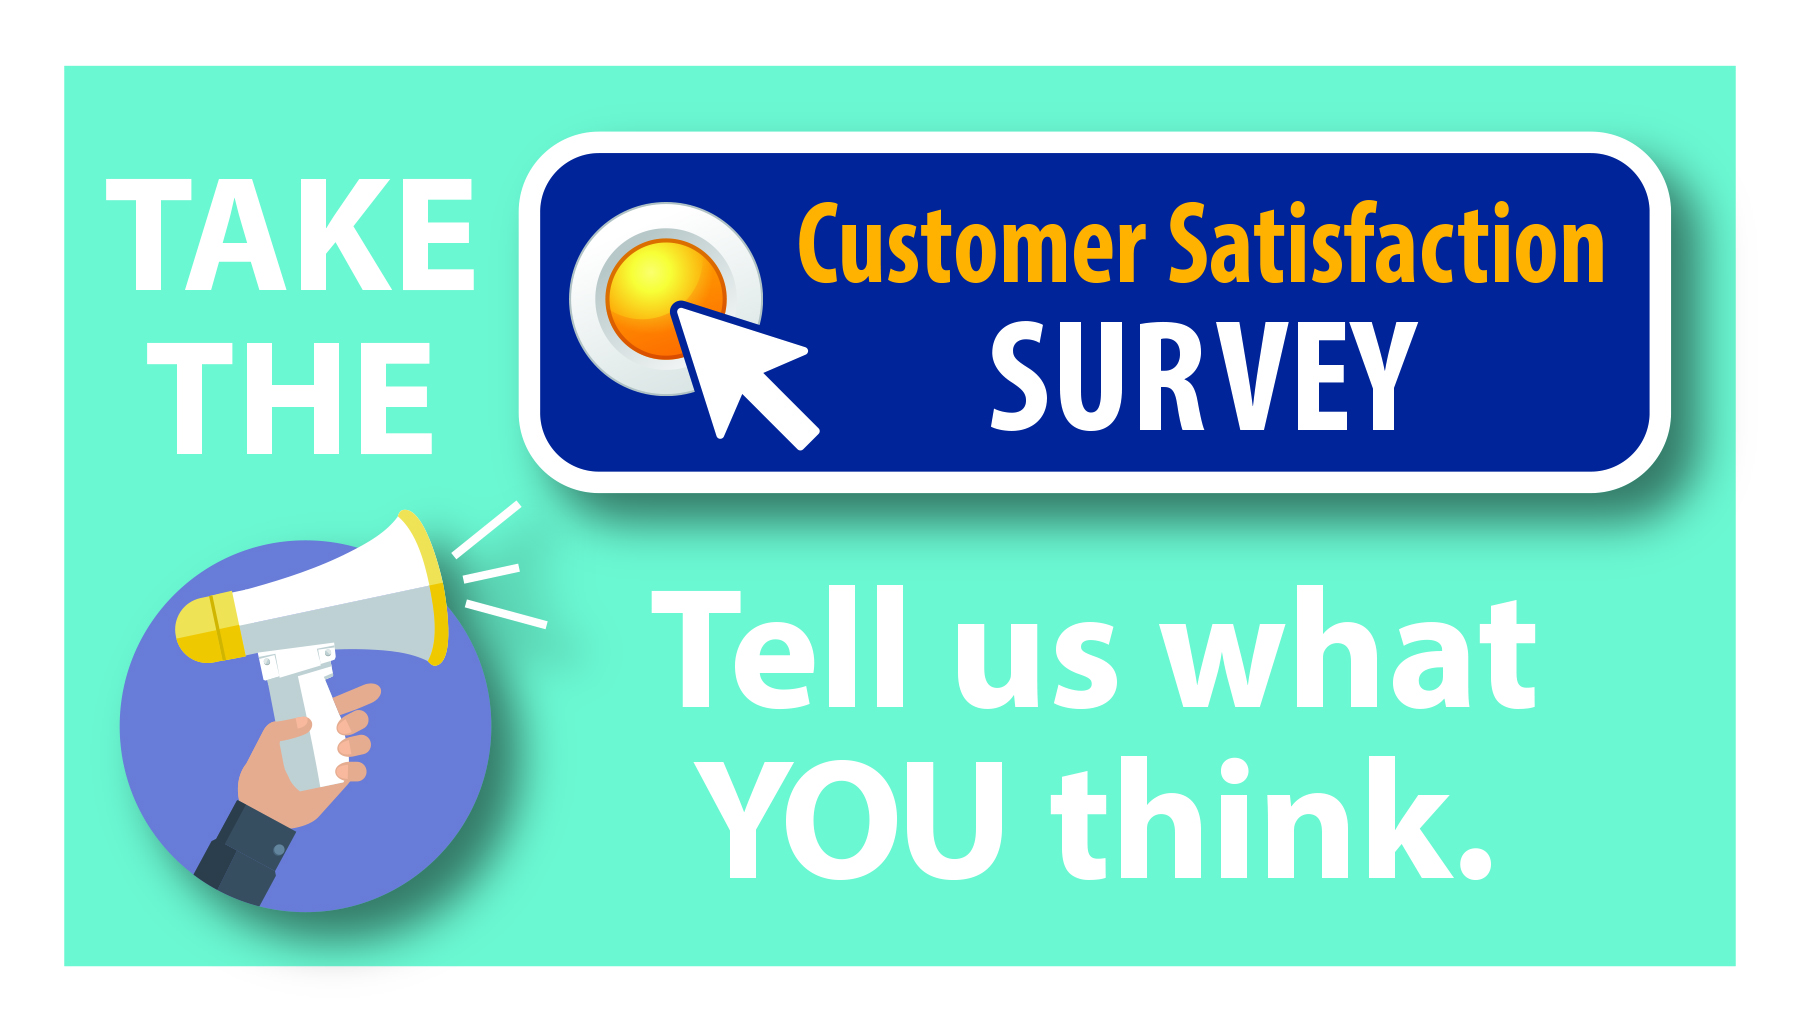 Take the Ministry of Transportation and Infrastructure Customer Satisfaction Survey